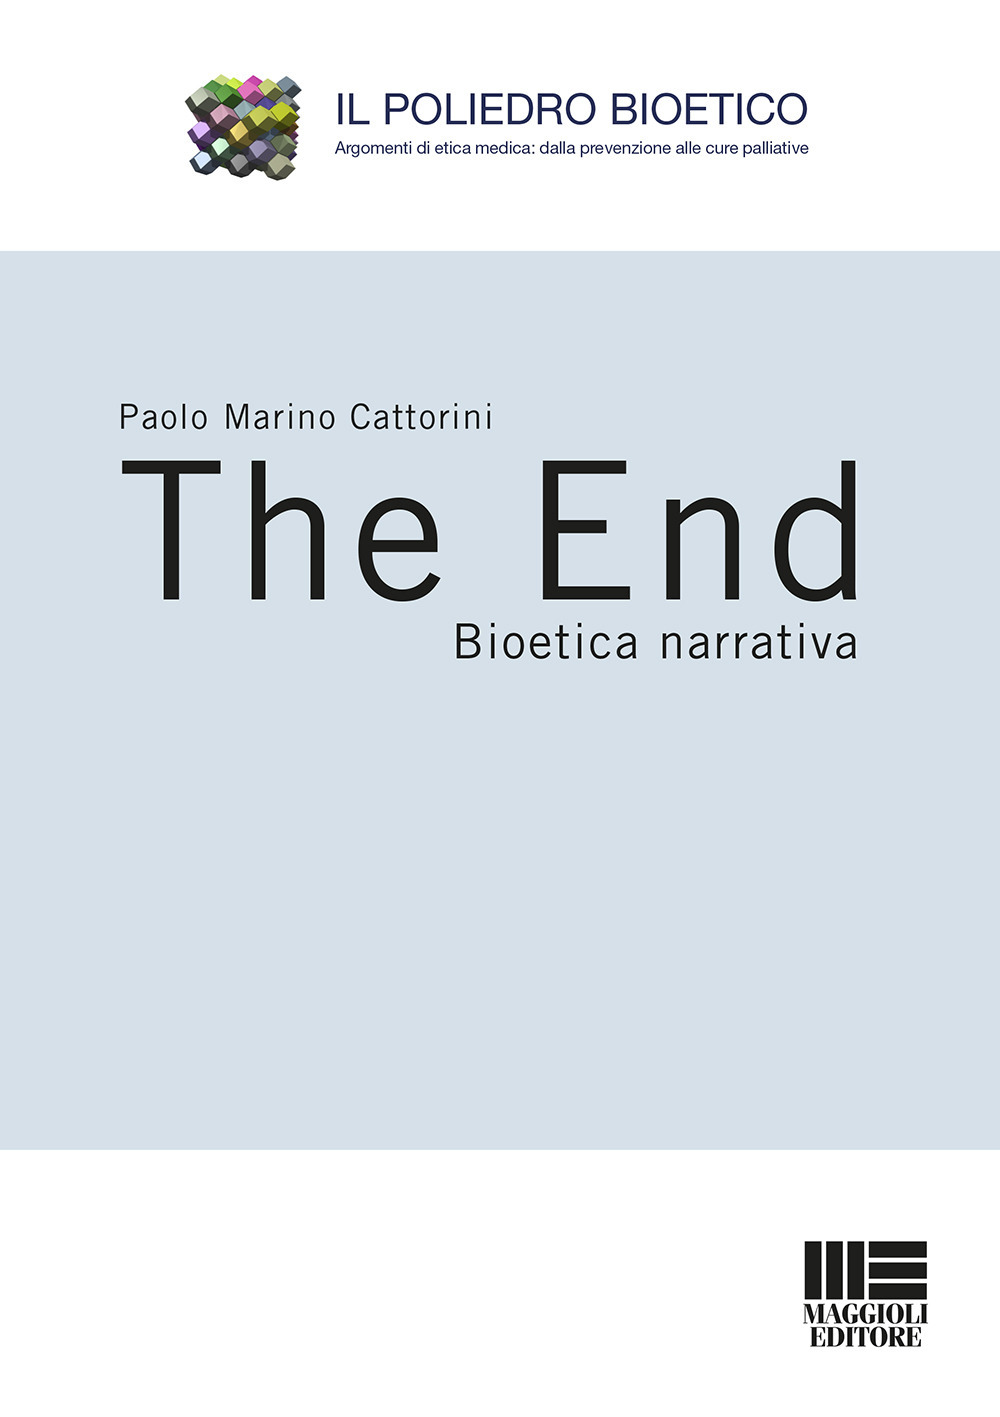 Image of The end. Bioetica narrativa